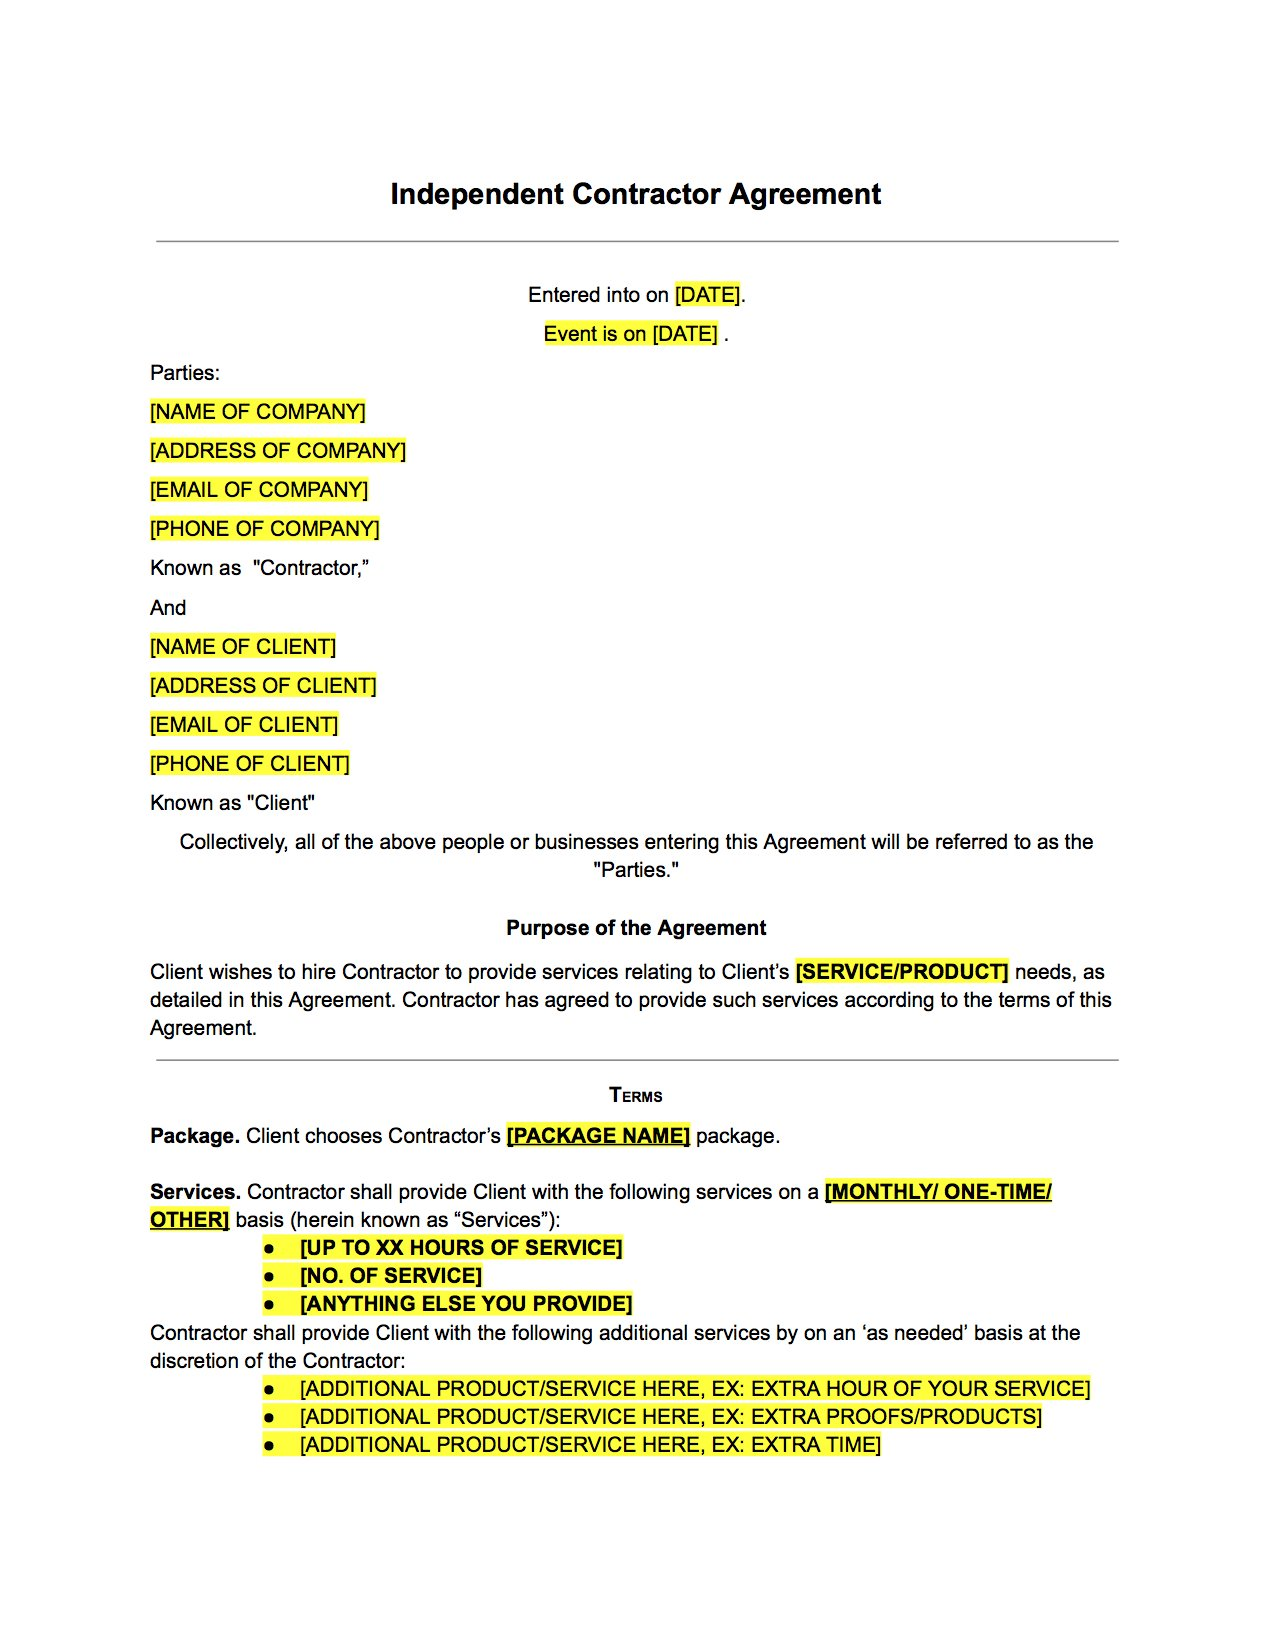 Independent Contractor Agreement Form Uk